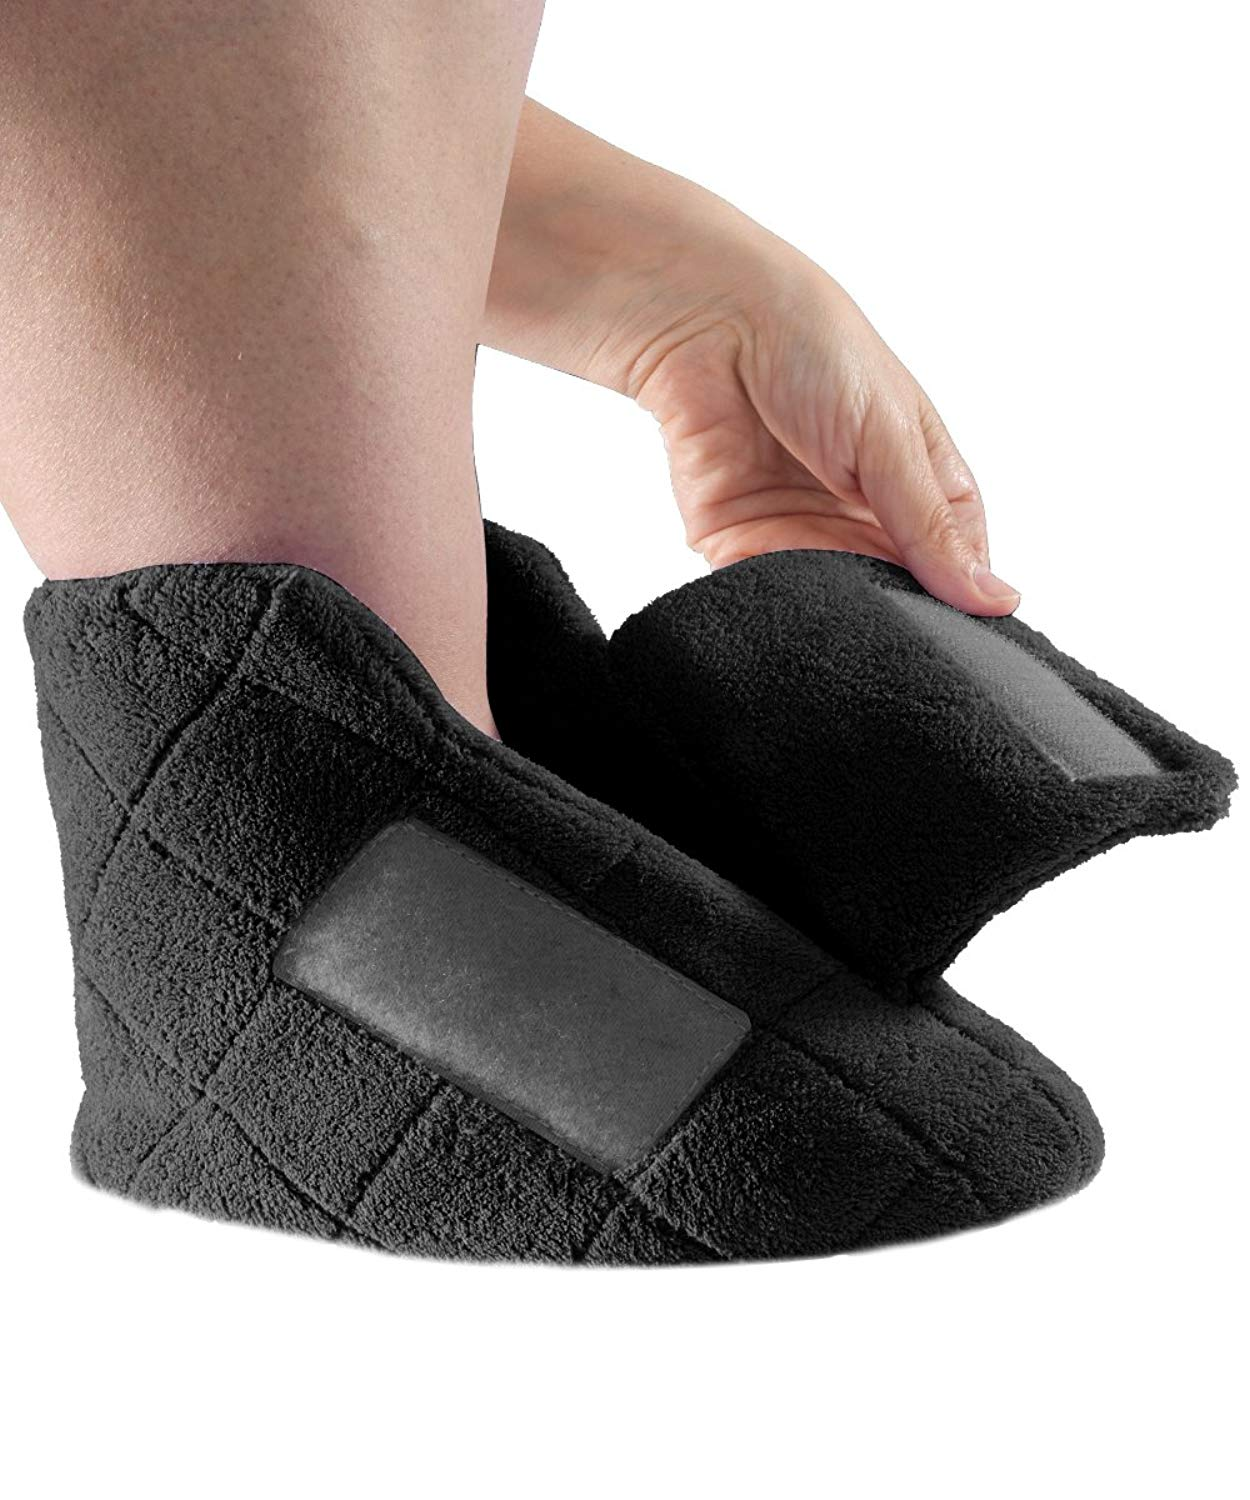 21ab1ac92bb Get Quotations · Extra Wide Swollen Feet Slippers - Soft Cozy Comfortable  and Plush Bootie Slippers